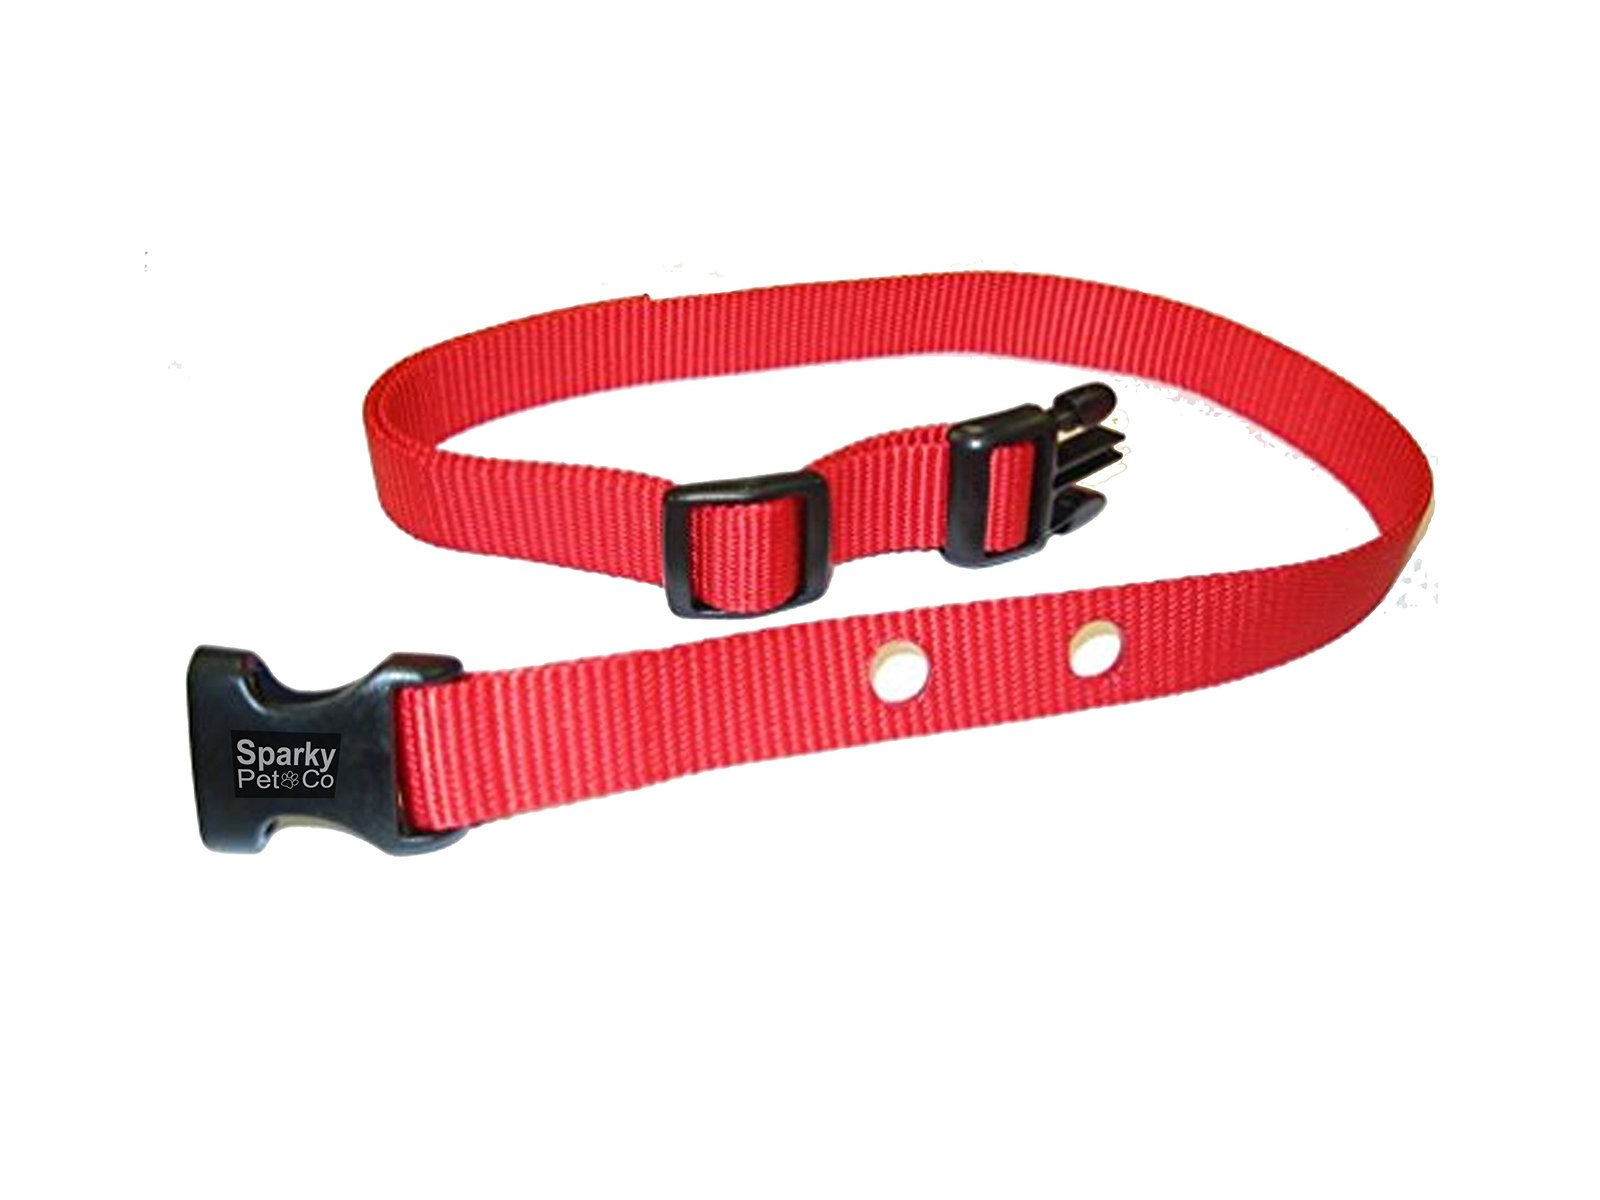 Dog Fence Receicer Heavy Duty Replacement Straps by Sparky PetCo (Red)